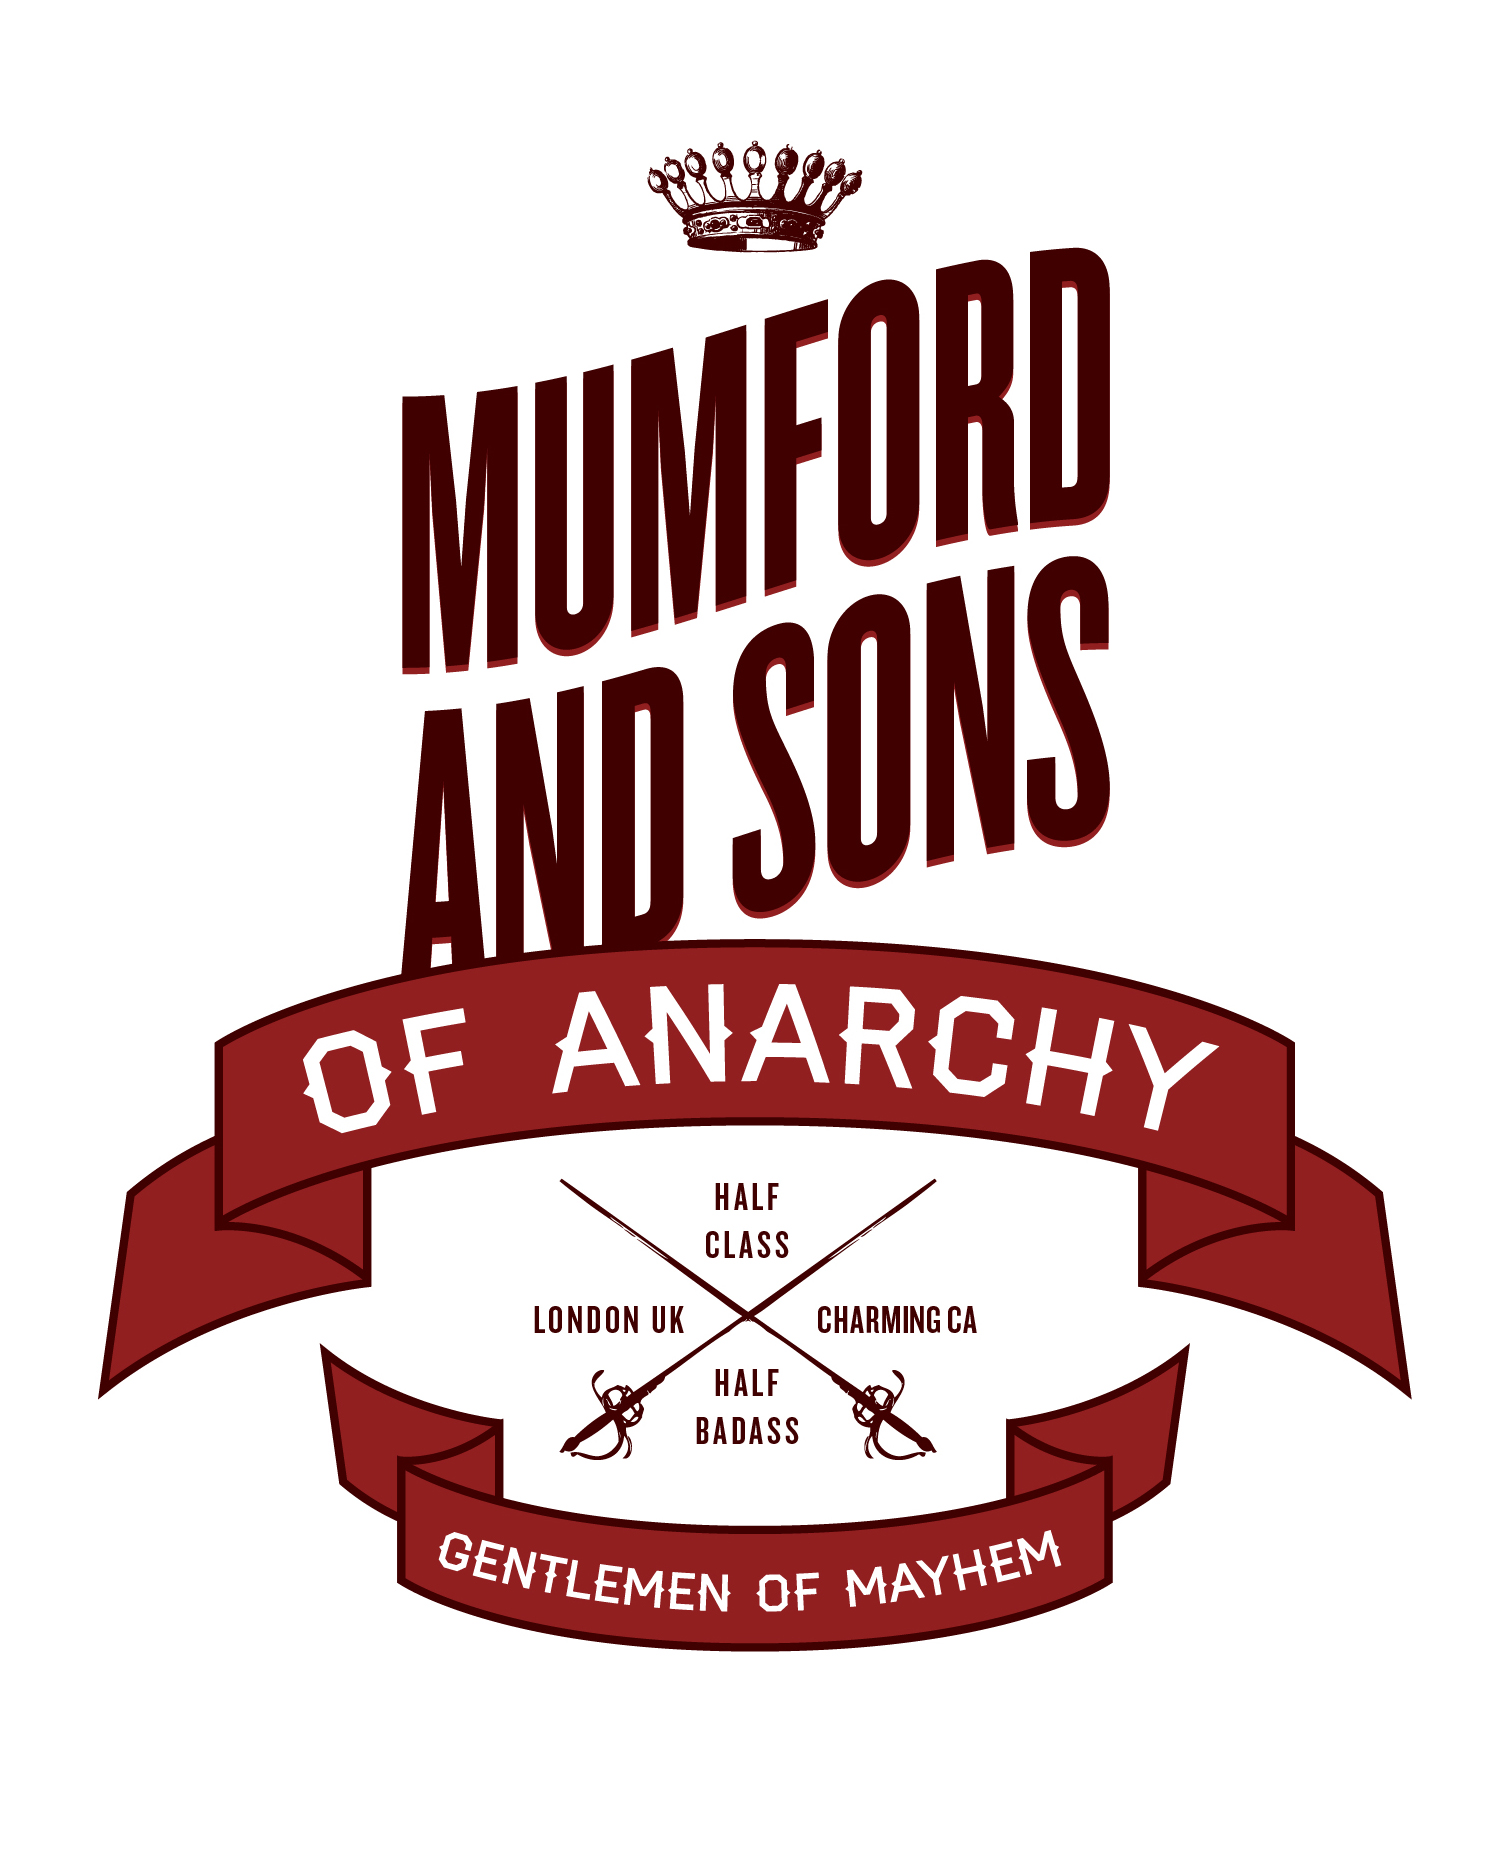 Mumford and Sons of Anarchy..